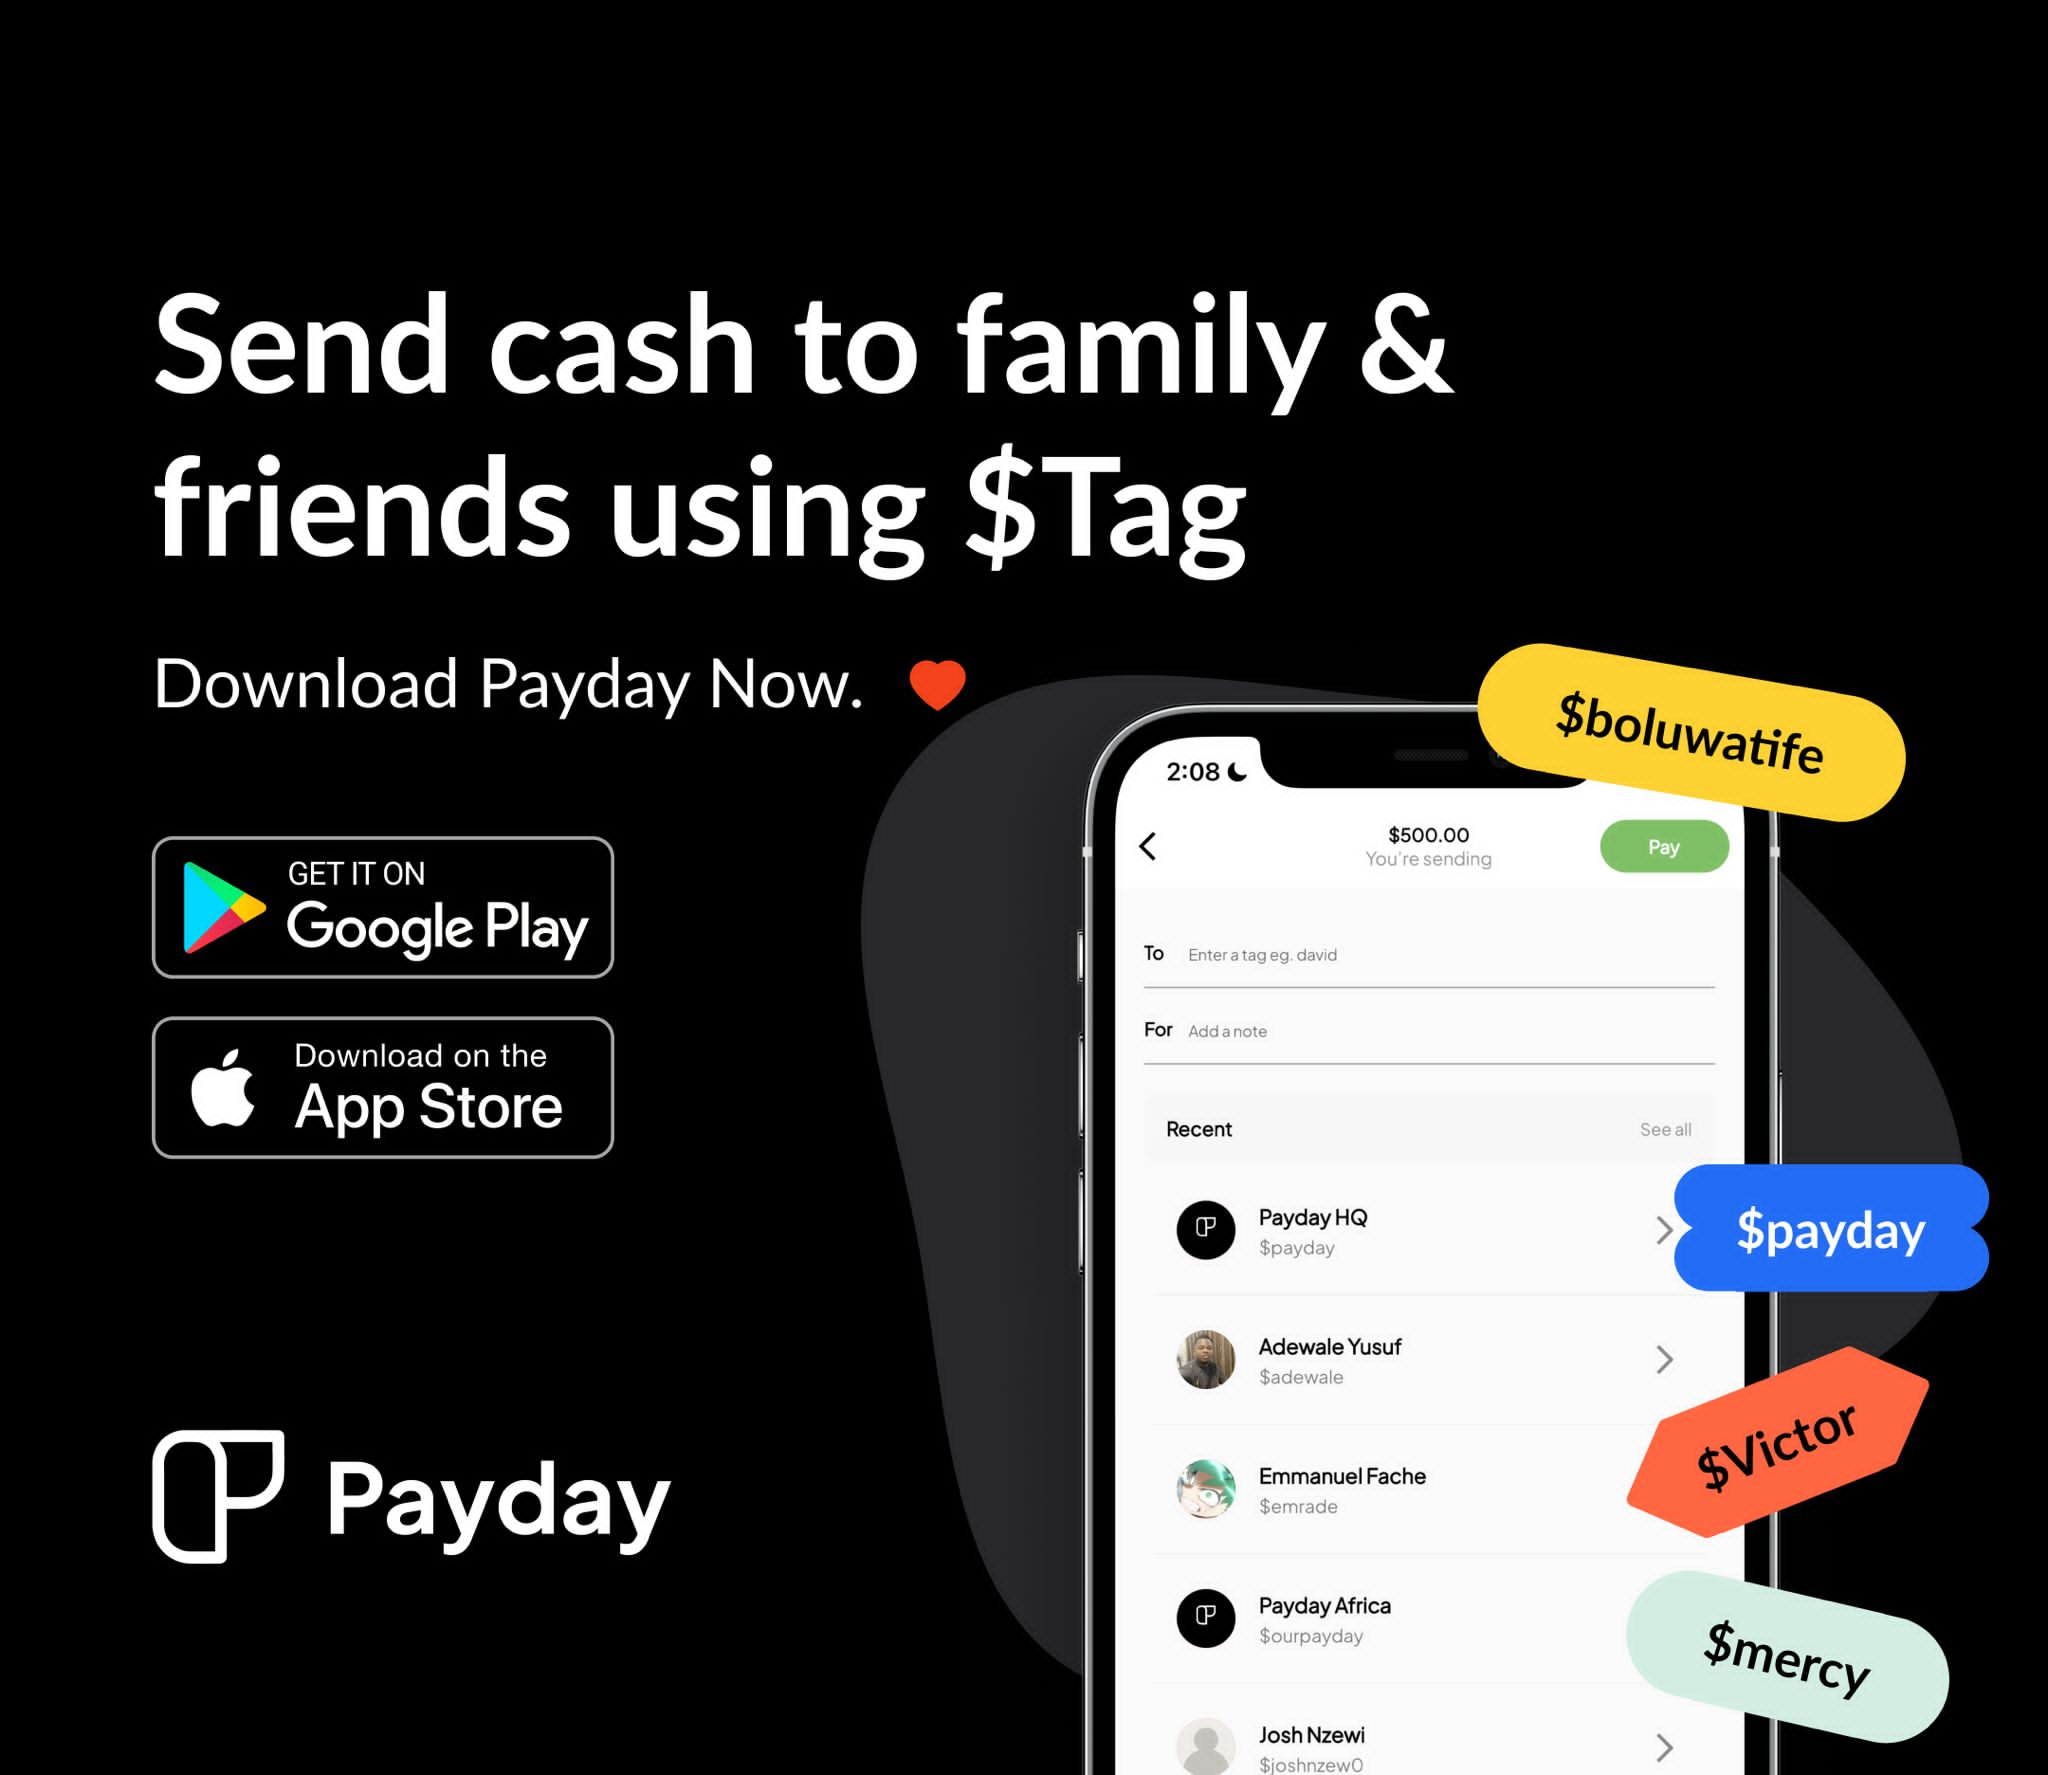 PayDay raises $1m pre-seed fund to build the PayPal for Africa